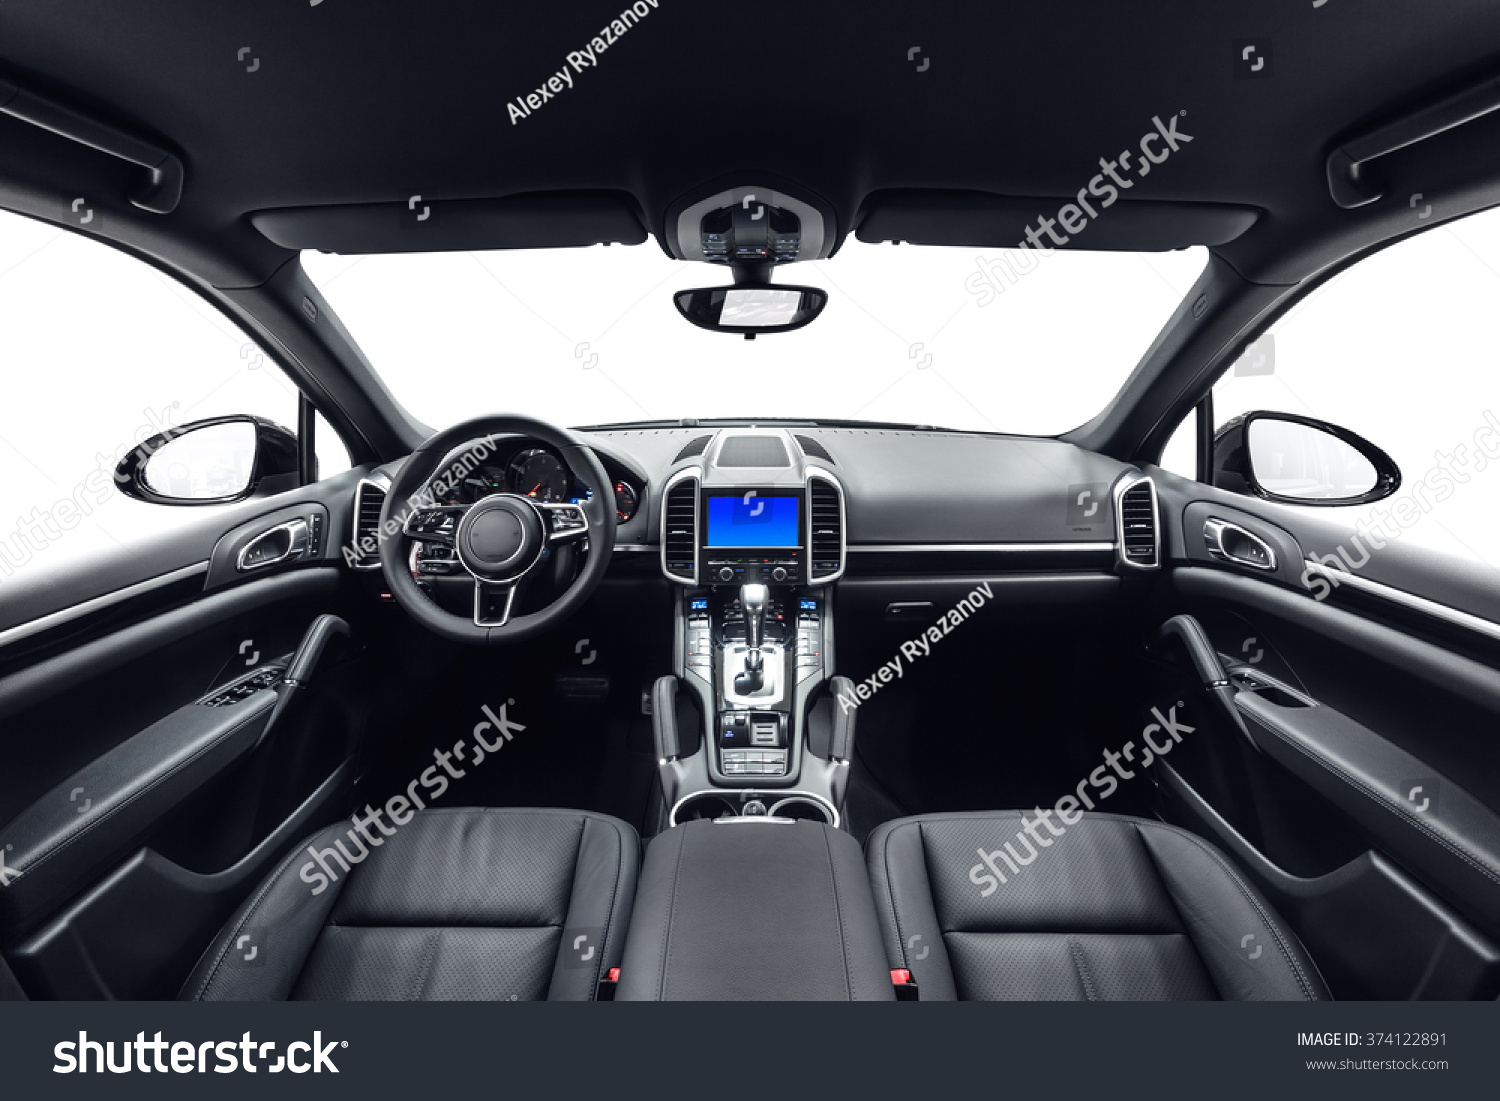 car inside interior prestige modern car 374122891 shutterstock. Black Bedroom Furniture Sets. Home Design Ideas